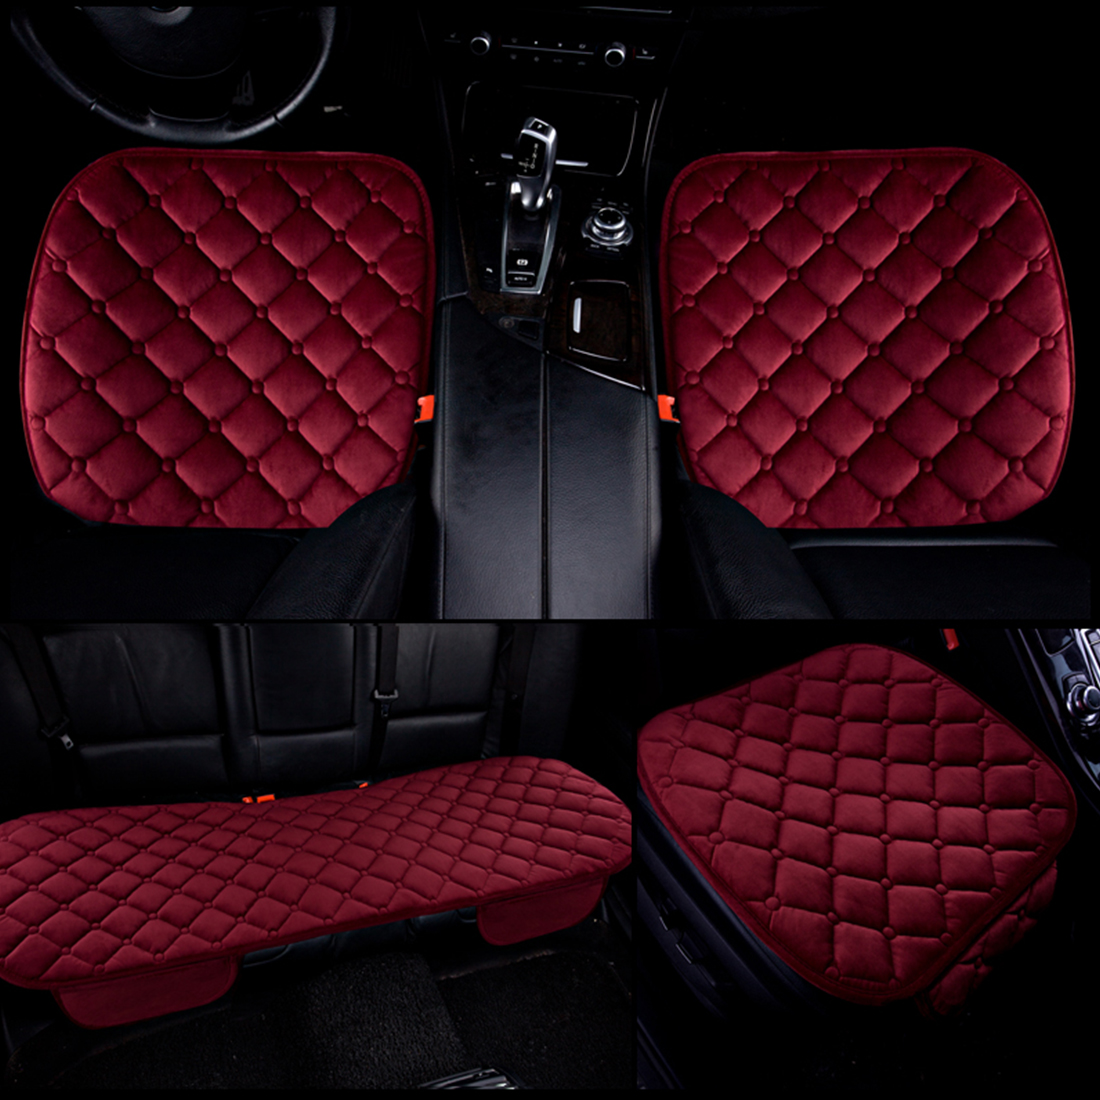 Dewtreetali Winter Warm Velvet Front Rear Car Seat Cover Set Protector Chair Pad Breathable Cushion Auto Seat Covers Accessories car seat cover winter warm velvet seat cushion universal front rear back chair seat pad for suv vehicle auto car seat protector